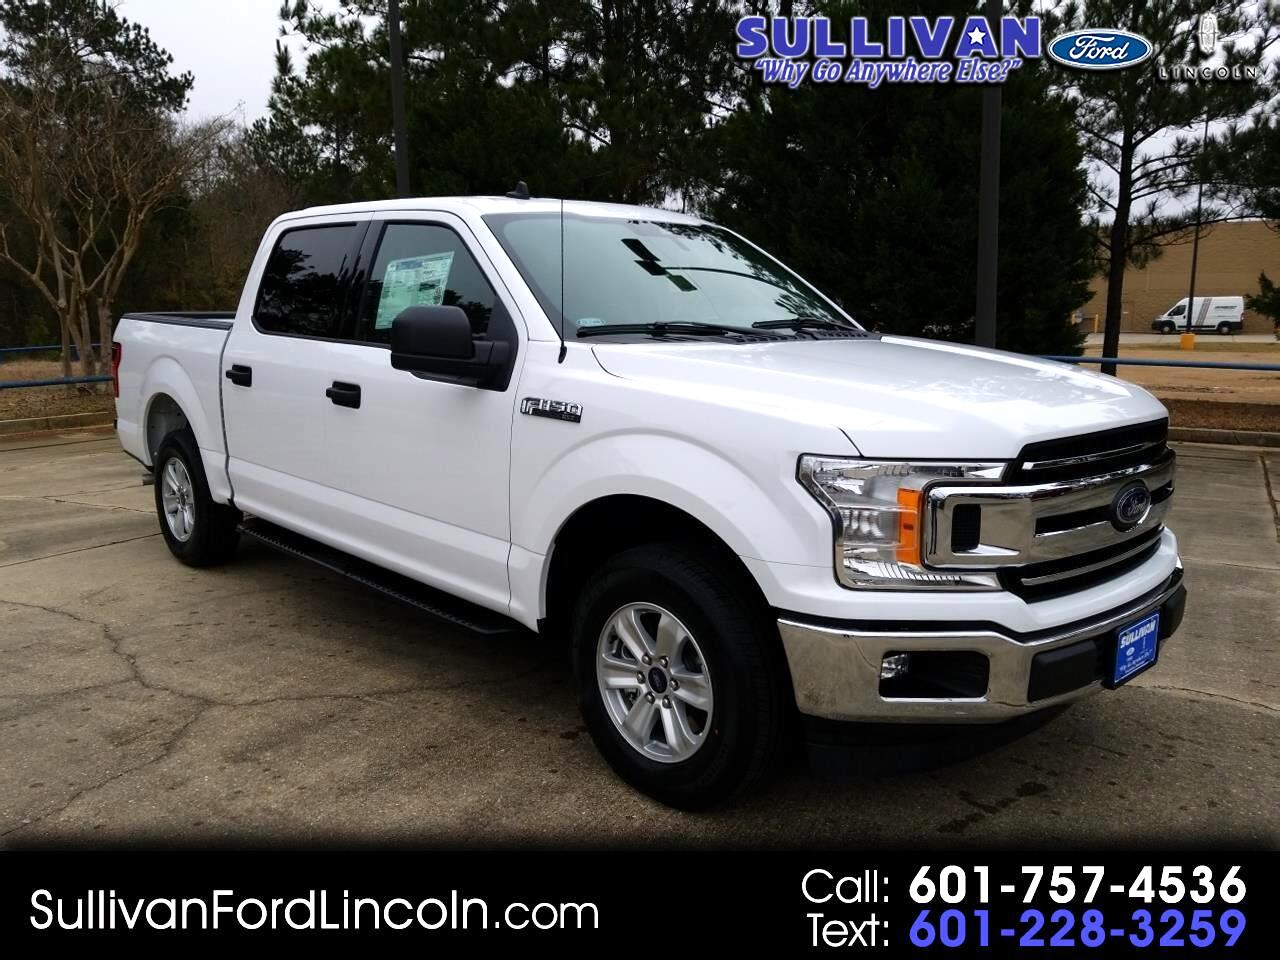 2019 Ford F-150 2WD SuperCrew 139